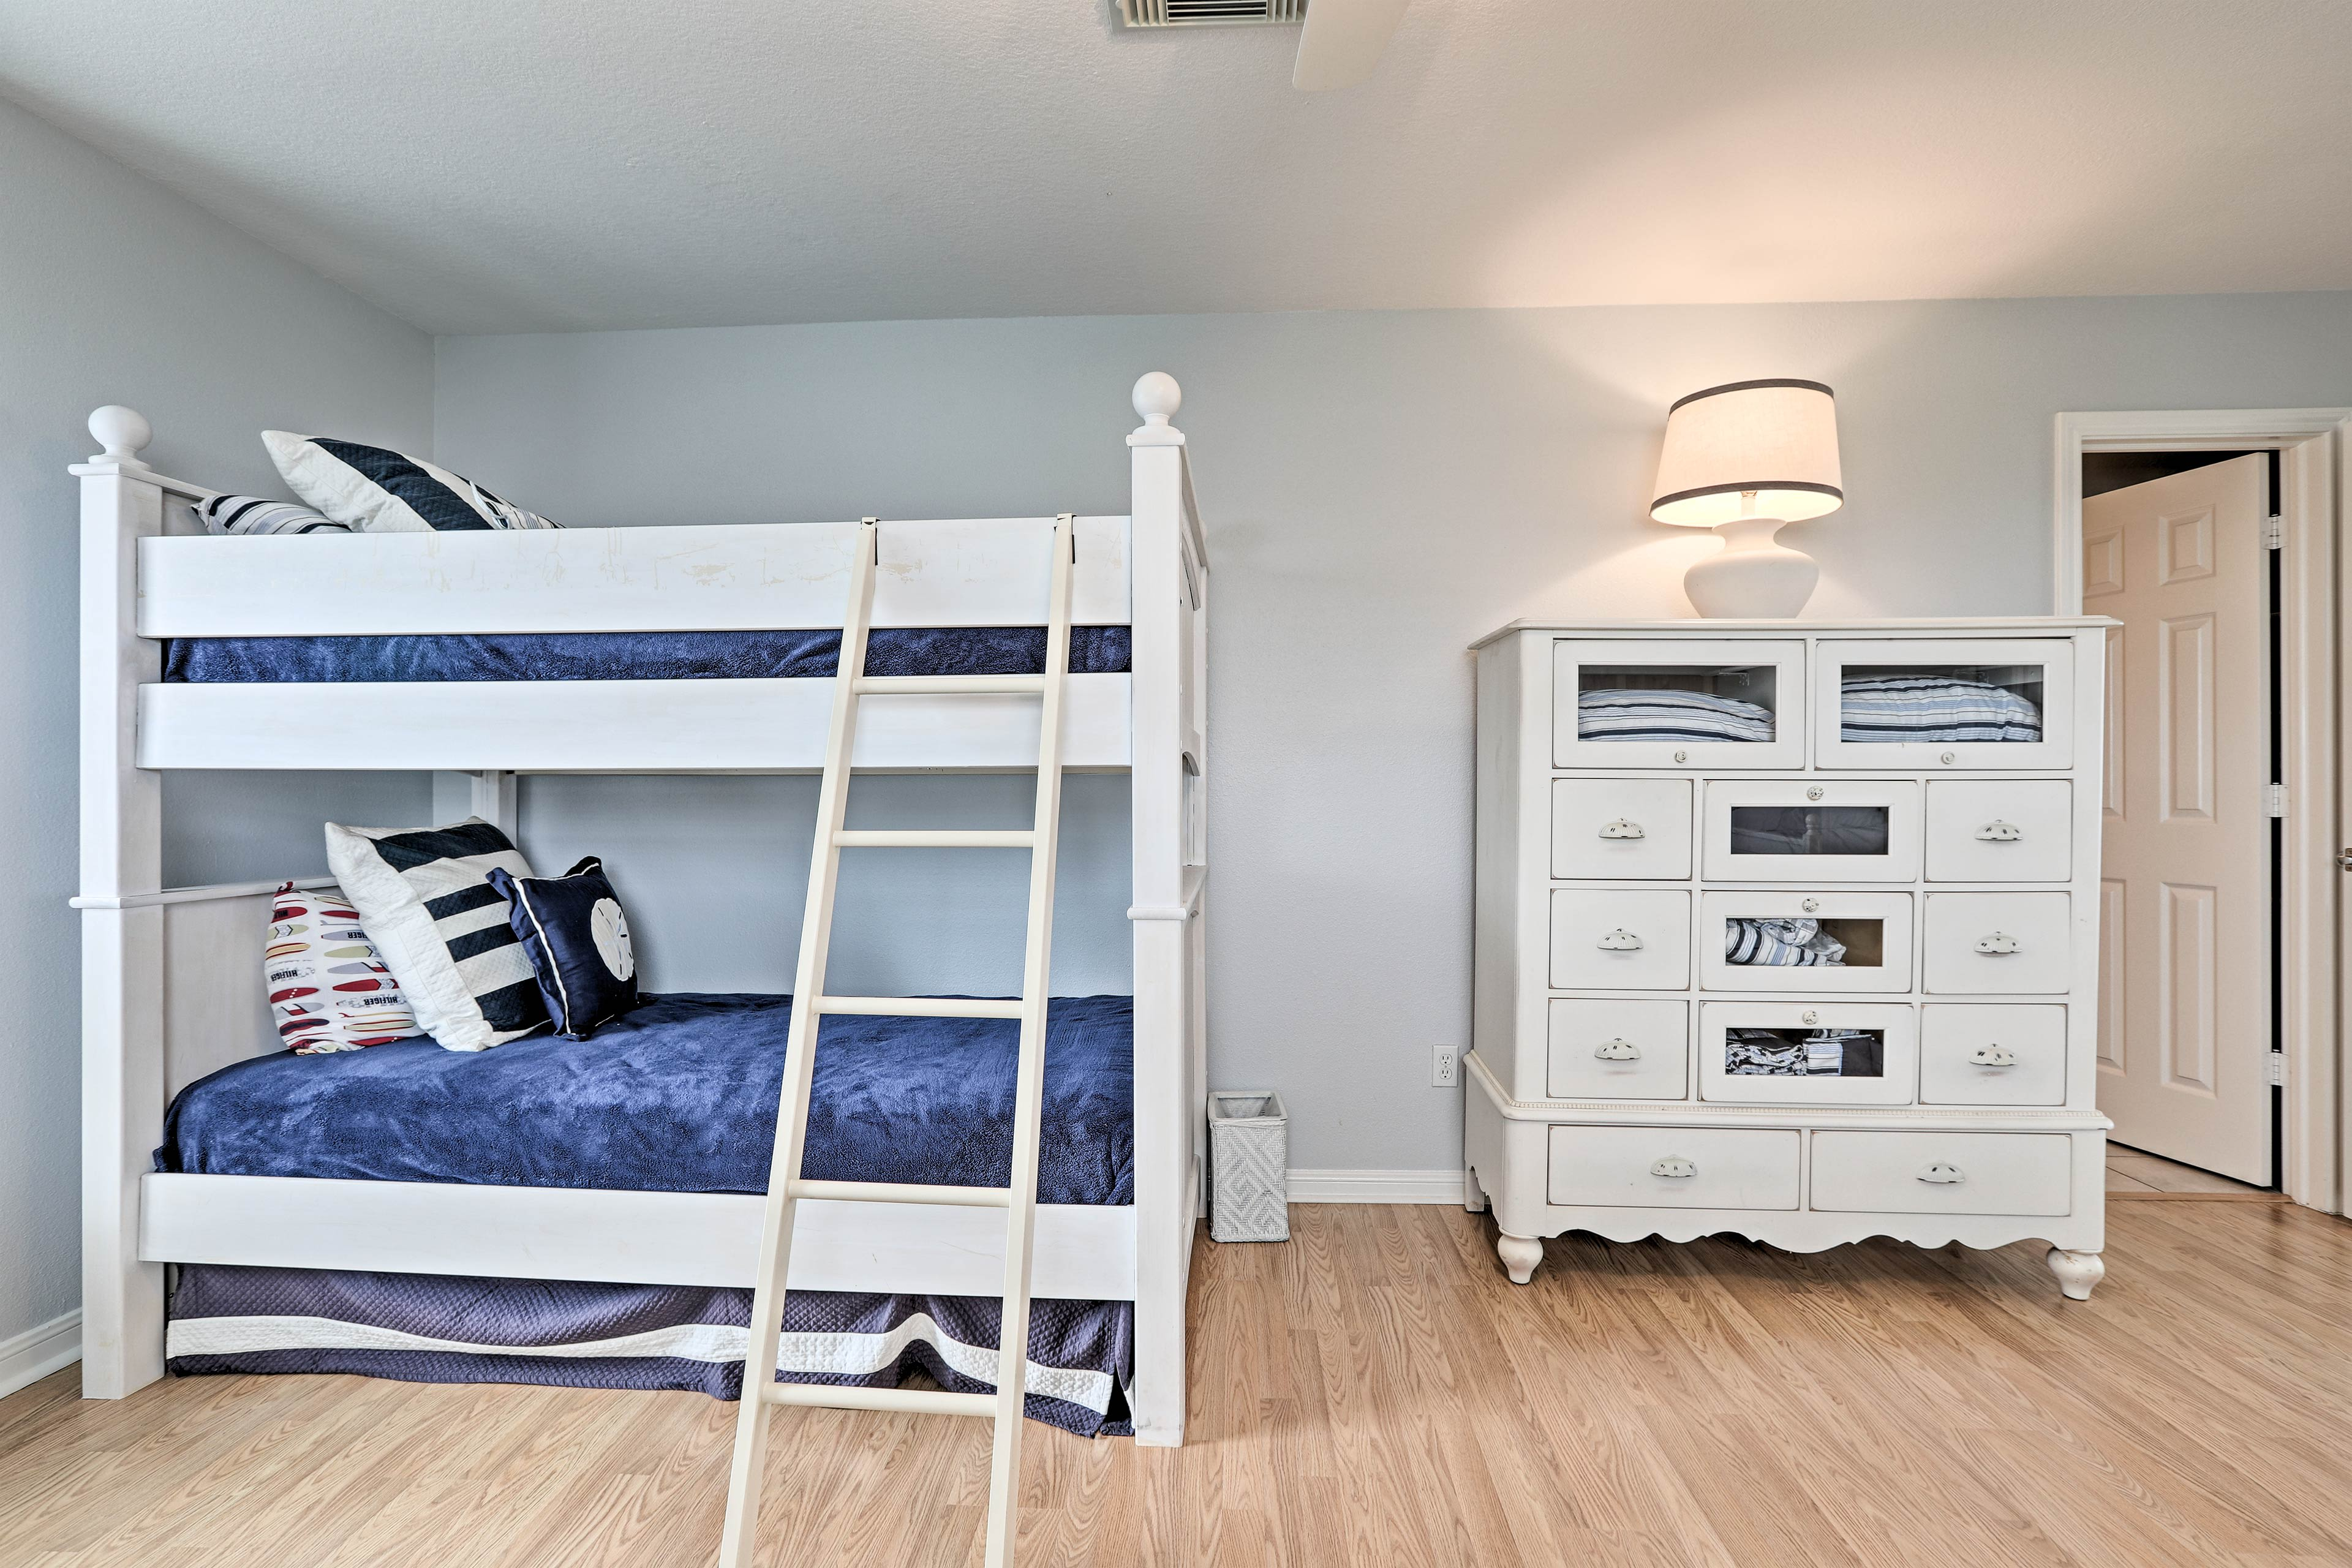 Flip a coin to see who gets the top bunk!